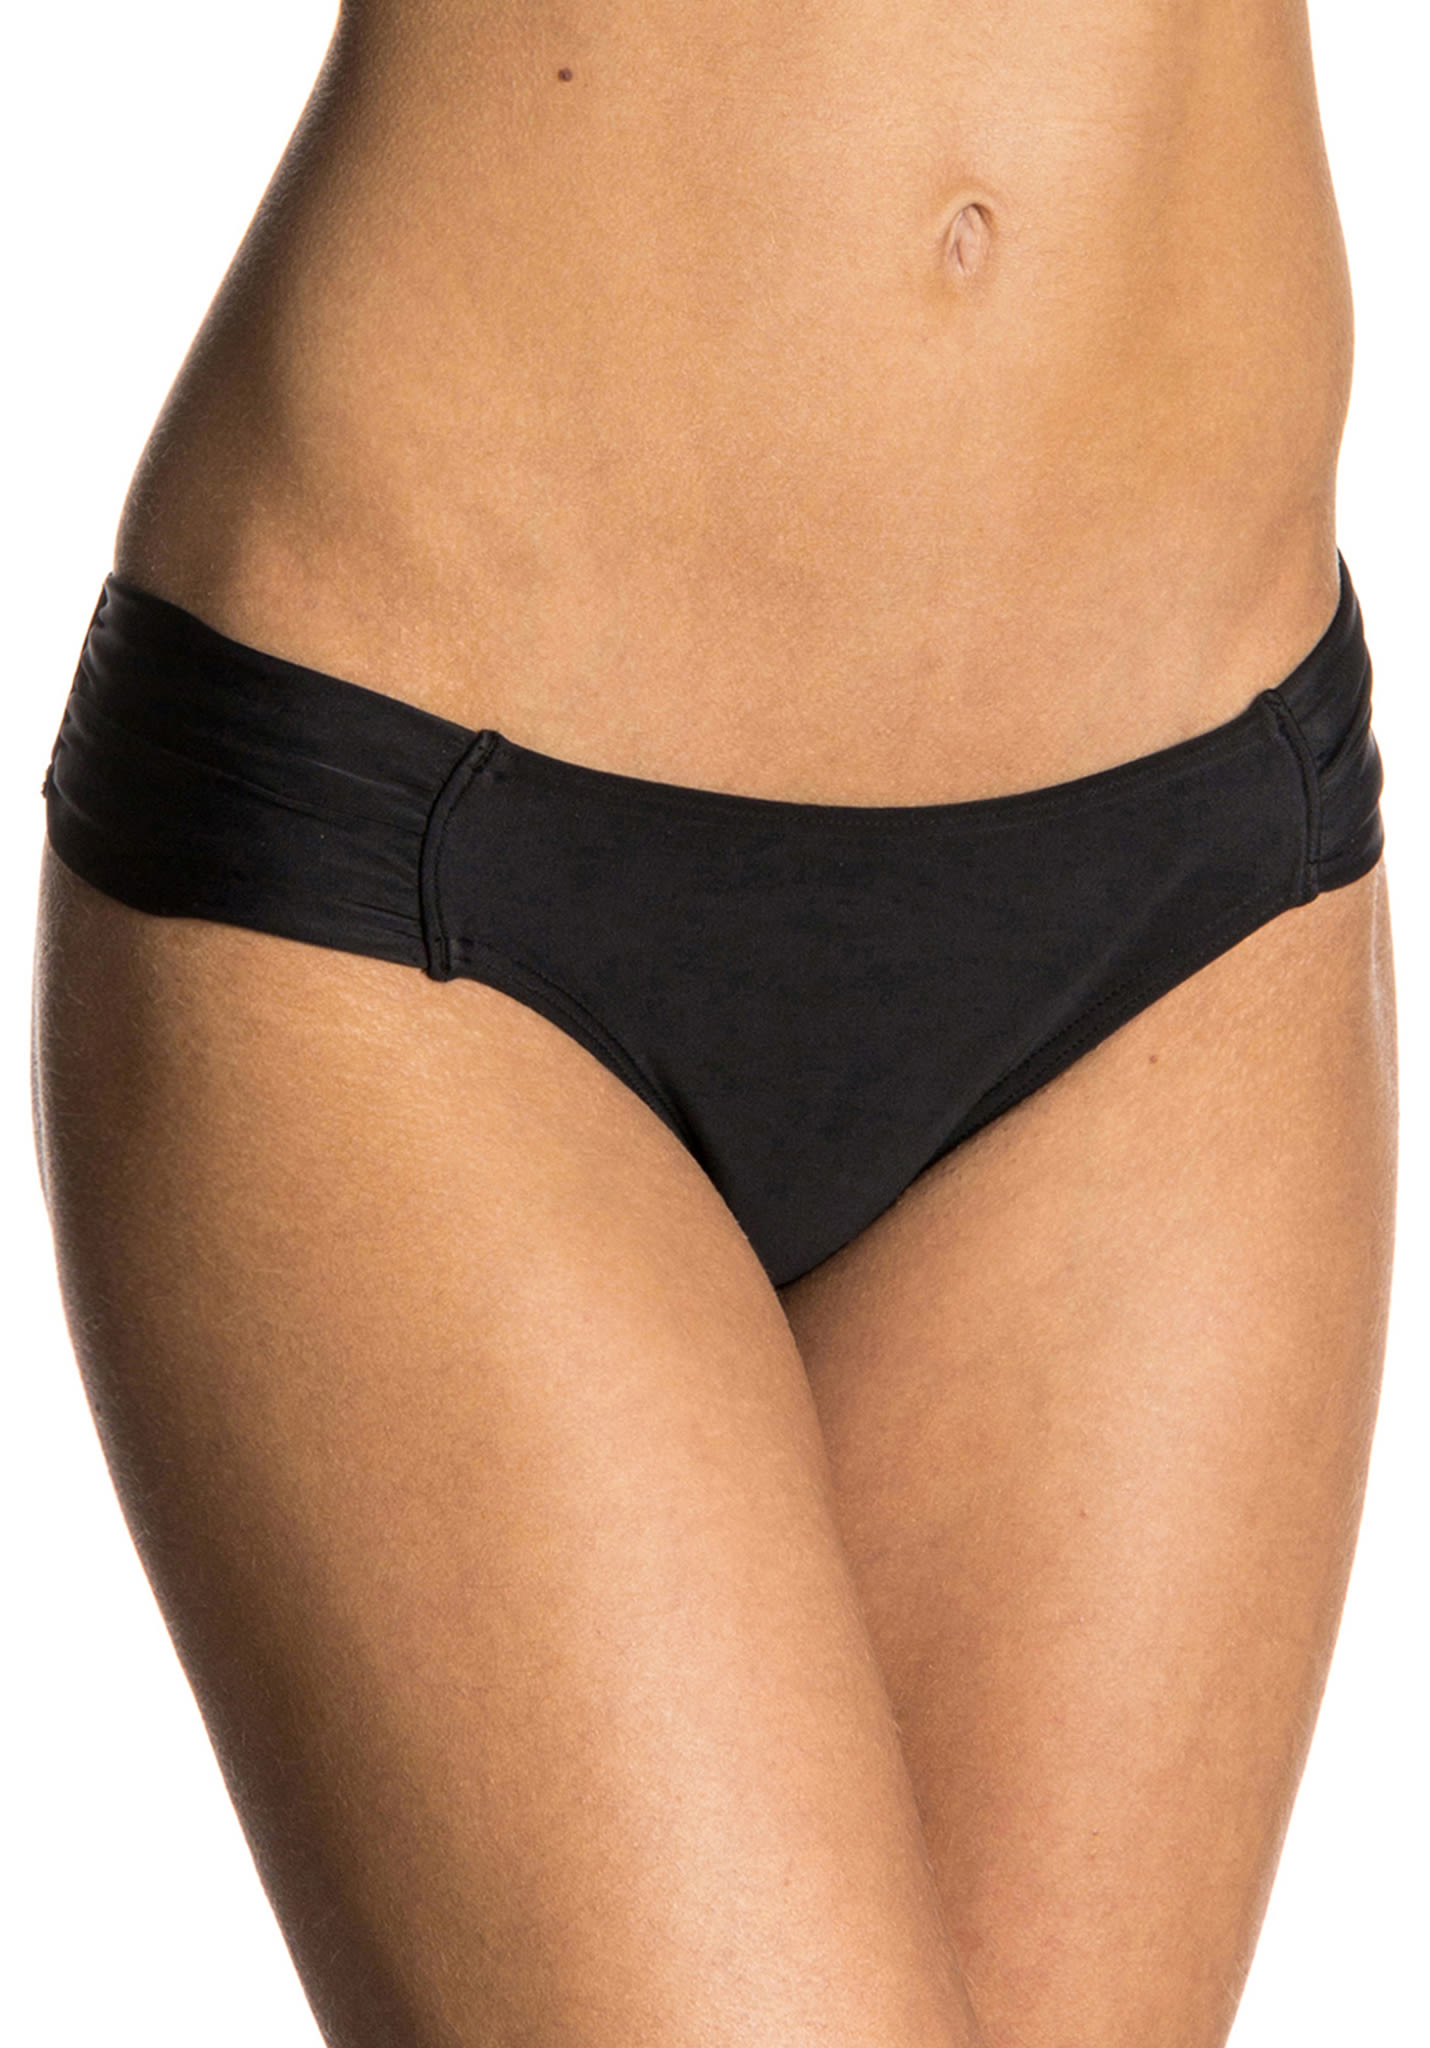 c7ee14cacd697 Rip Curl Classic Surf Cheeky Hipster - Bikini Bottom for Women - Black